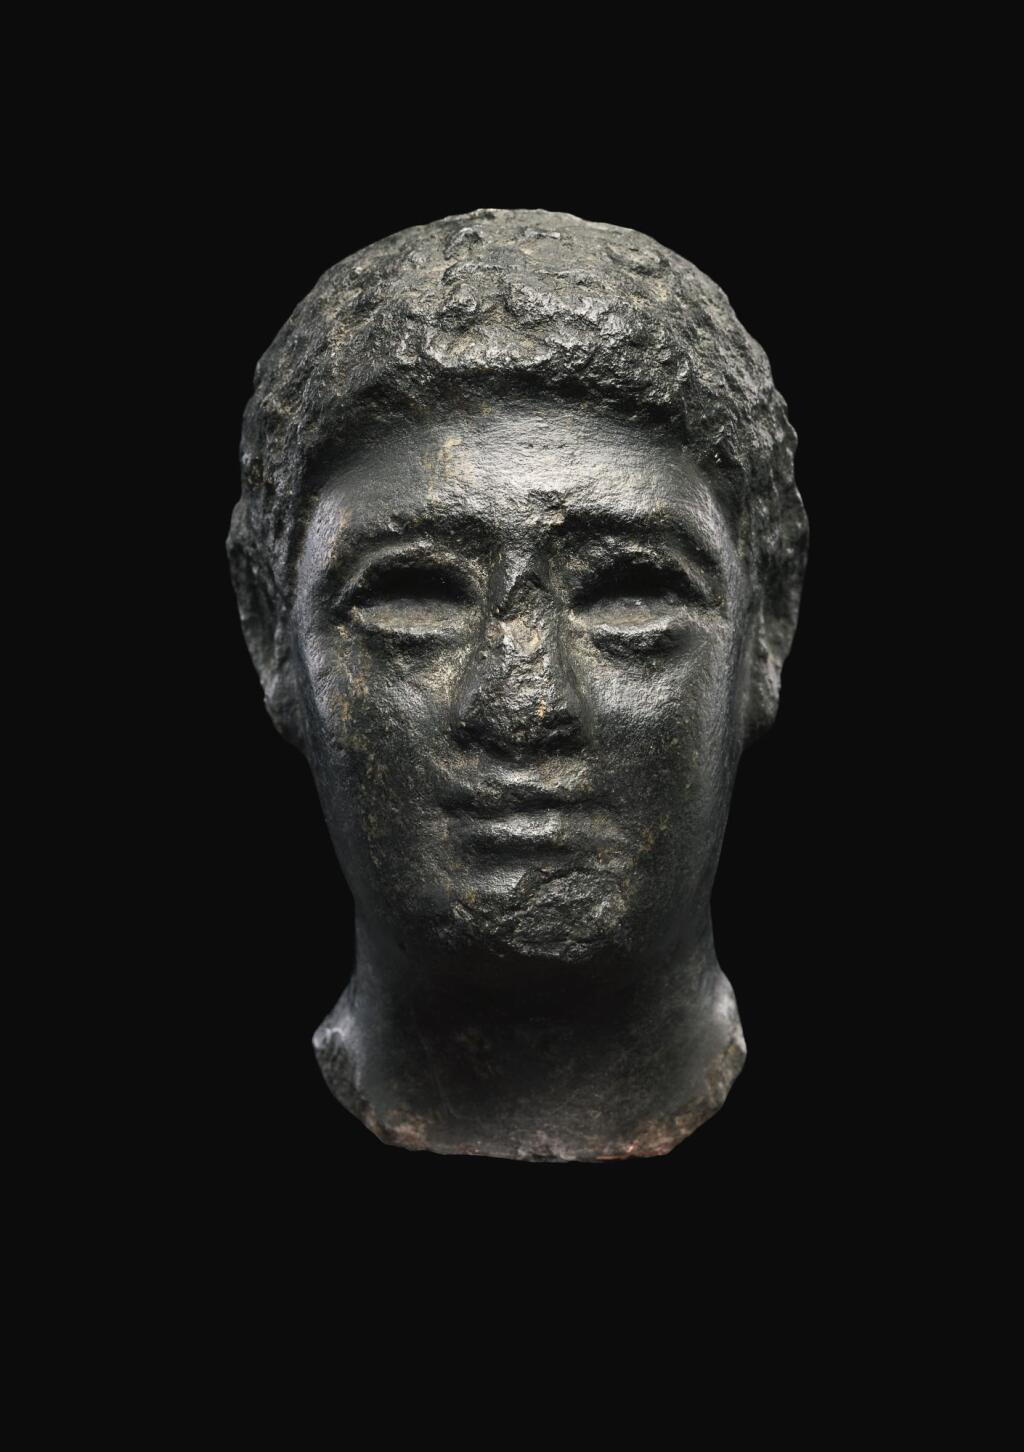 AN EGYPTIAN BASALT HEAD OF A MAN, LATE PTOLEMAIC PERIOD, CIRCA 100-30 B.C.